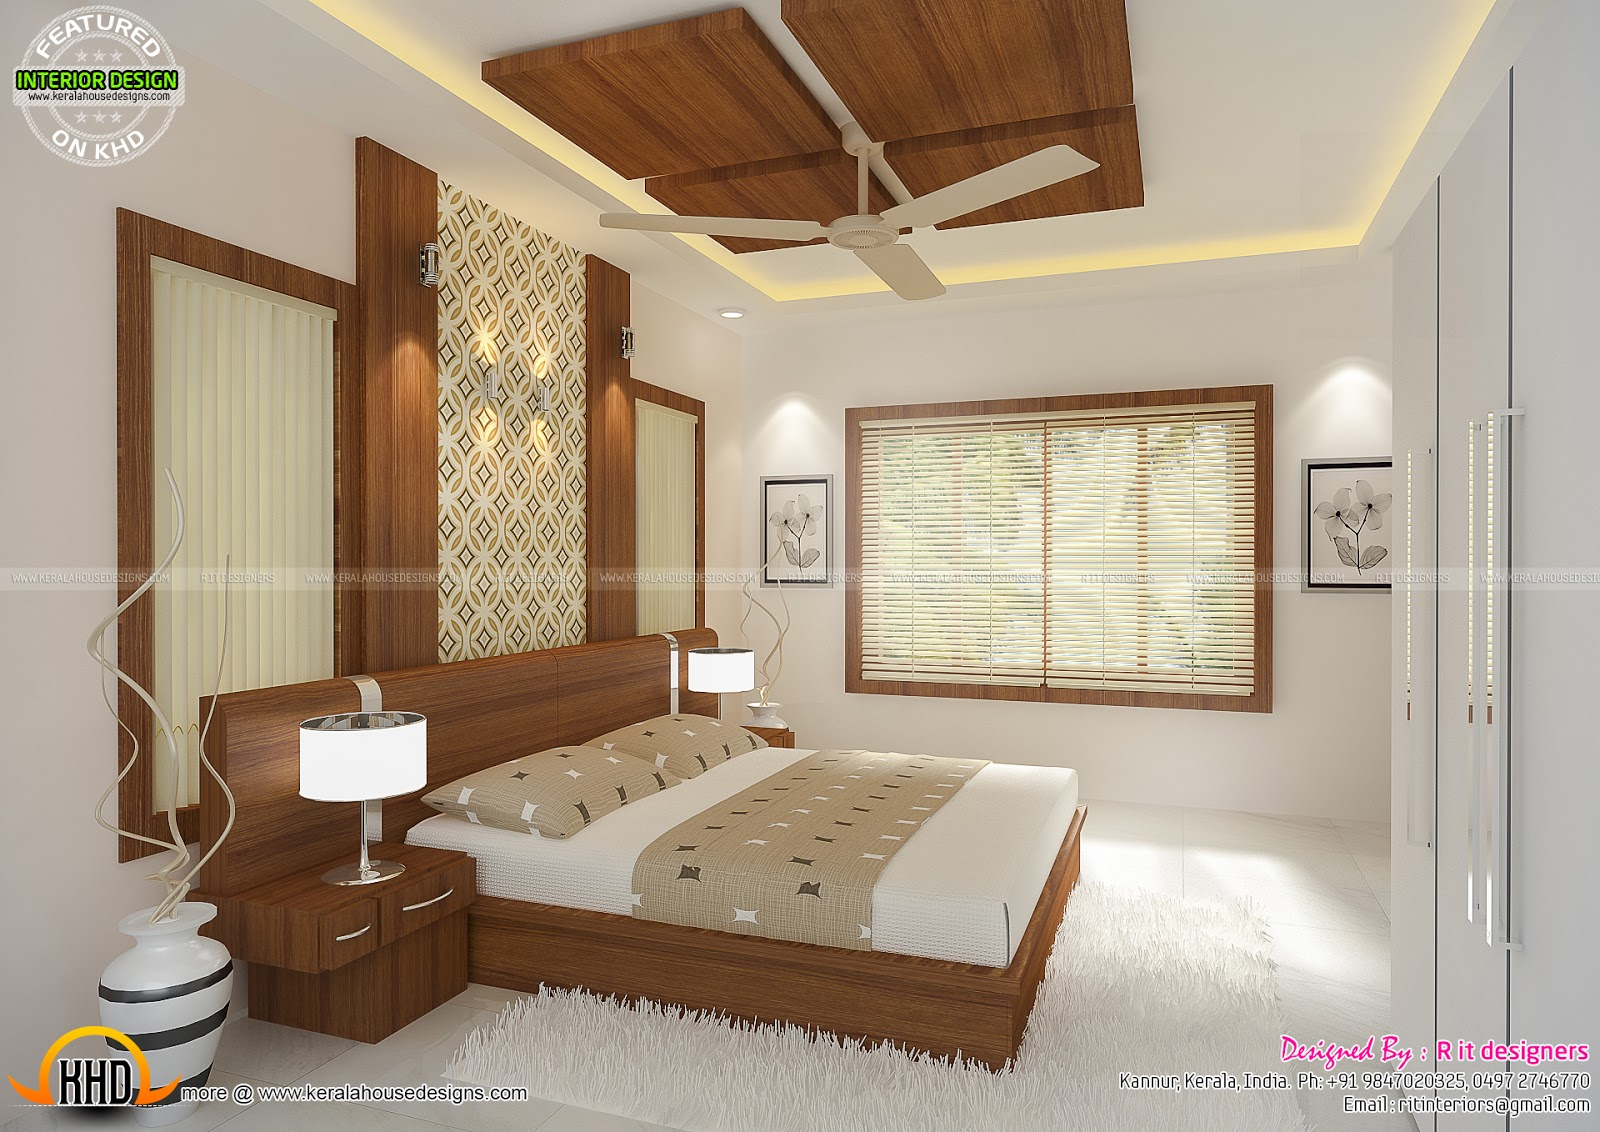 Interiors of bedrooms and kitchen kerala home design and for Kerala home interior design ideas